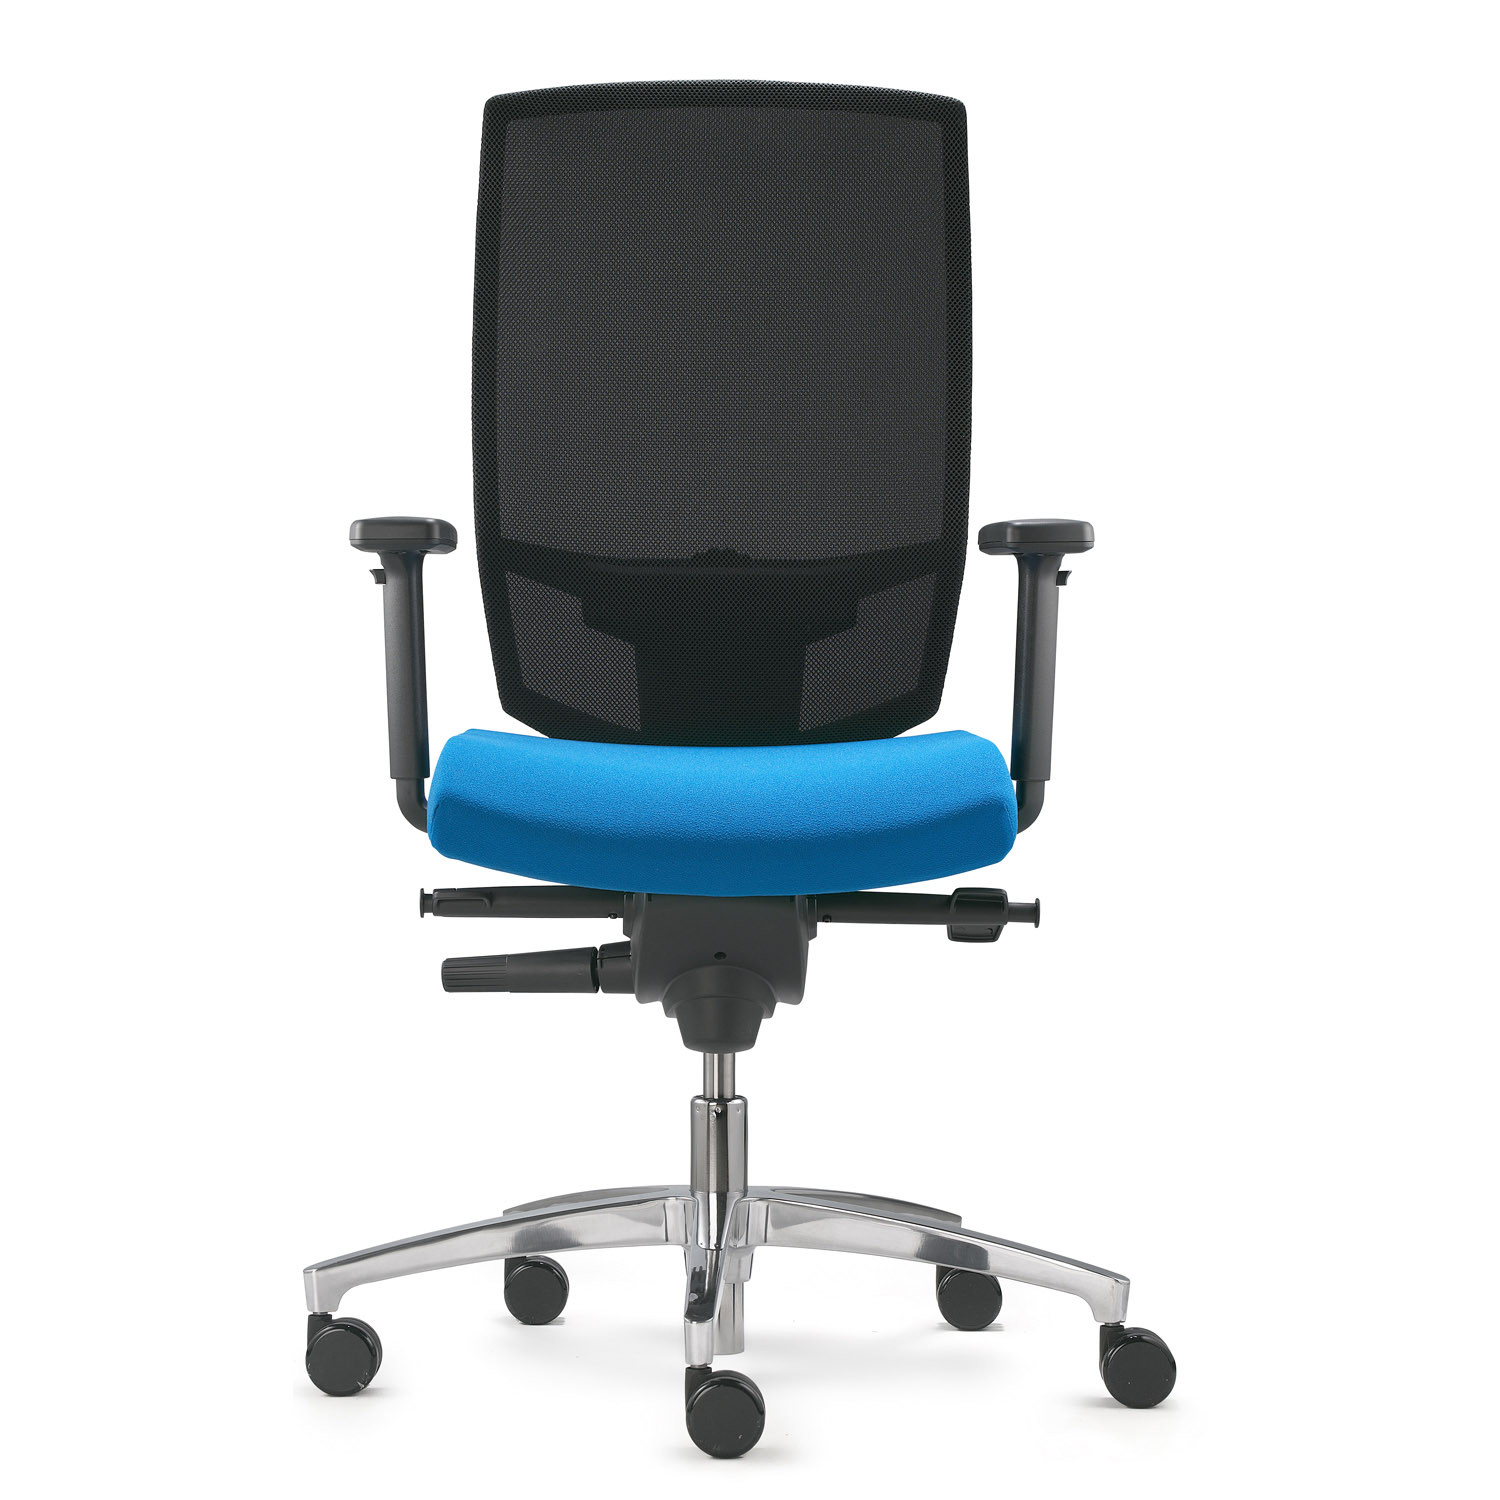 Just Magic S Task Chairs Mesh Operator Chairs Apres